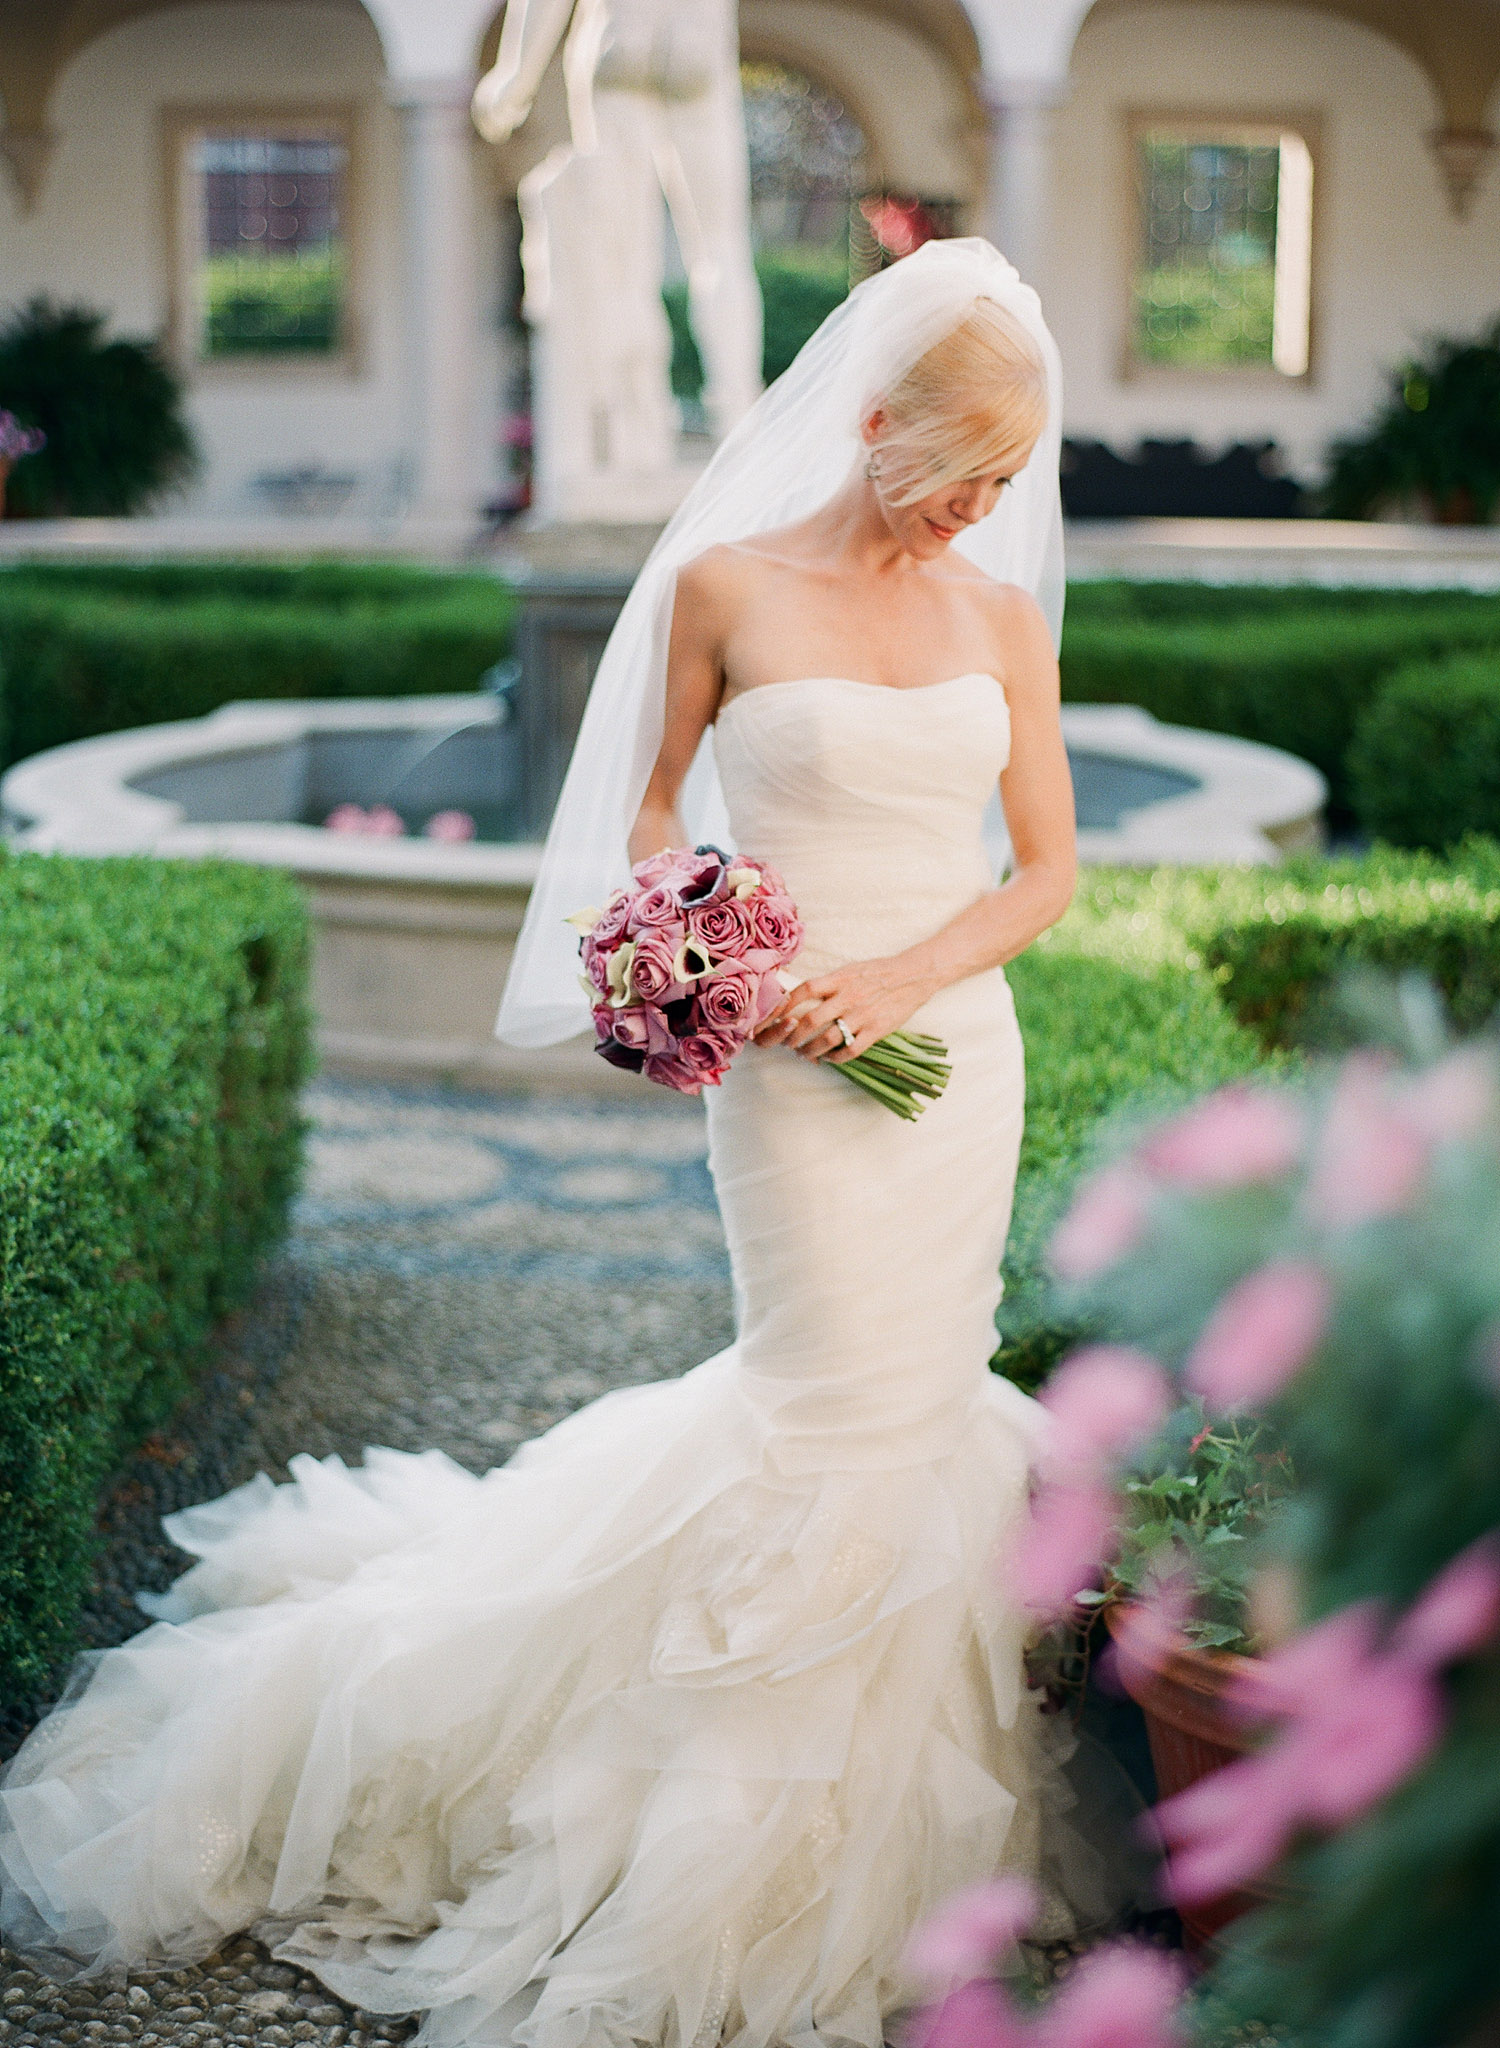 bride and groom pose at their Destination Italian Wedding at the Villa Terrace, a favorite Italian Wedding venue of Destination wedding photographer Lexia Frank, who is a film photographer for luxury weddings